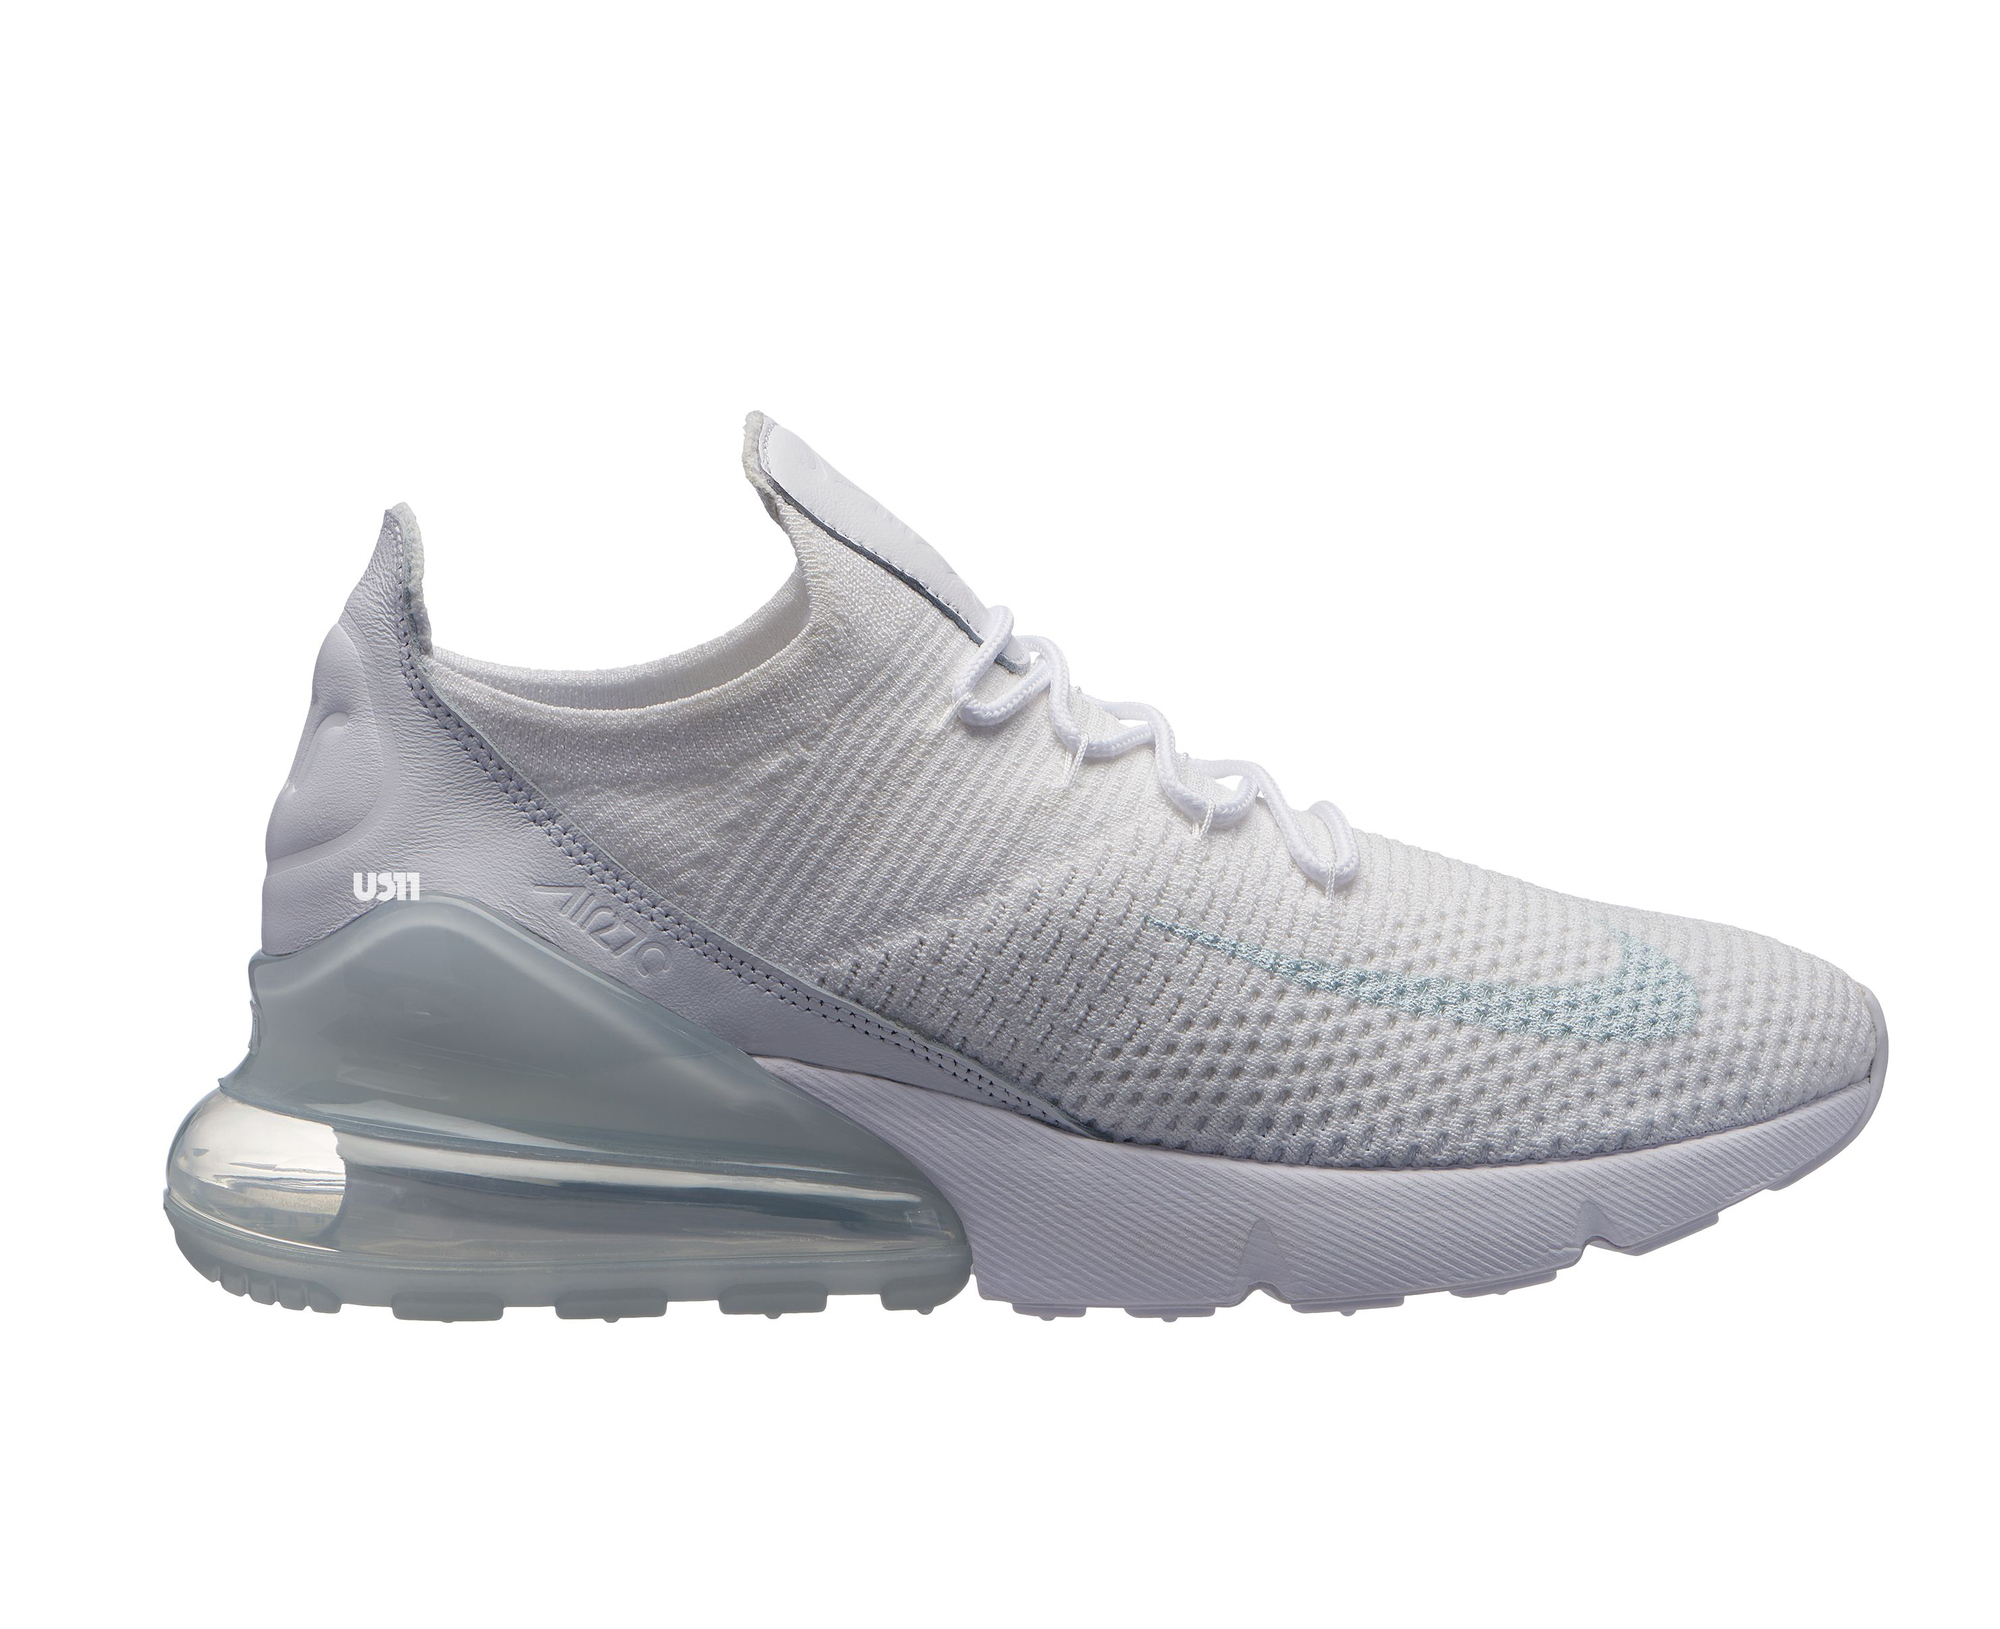 new product 6f602 de4ec What's Next for the Air Max 270 Flyknit? - WearTesters